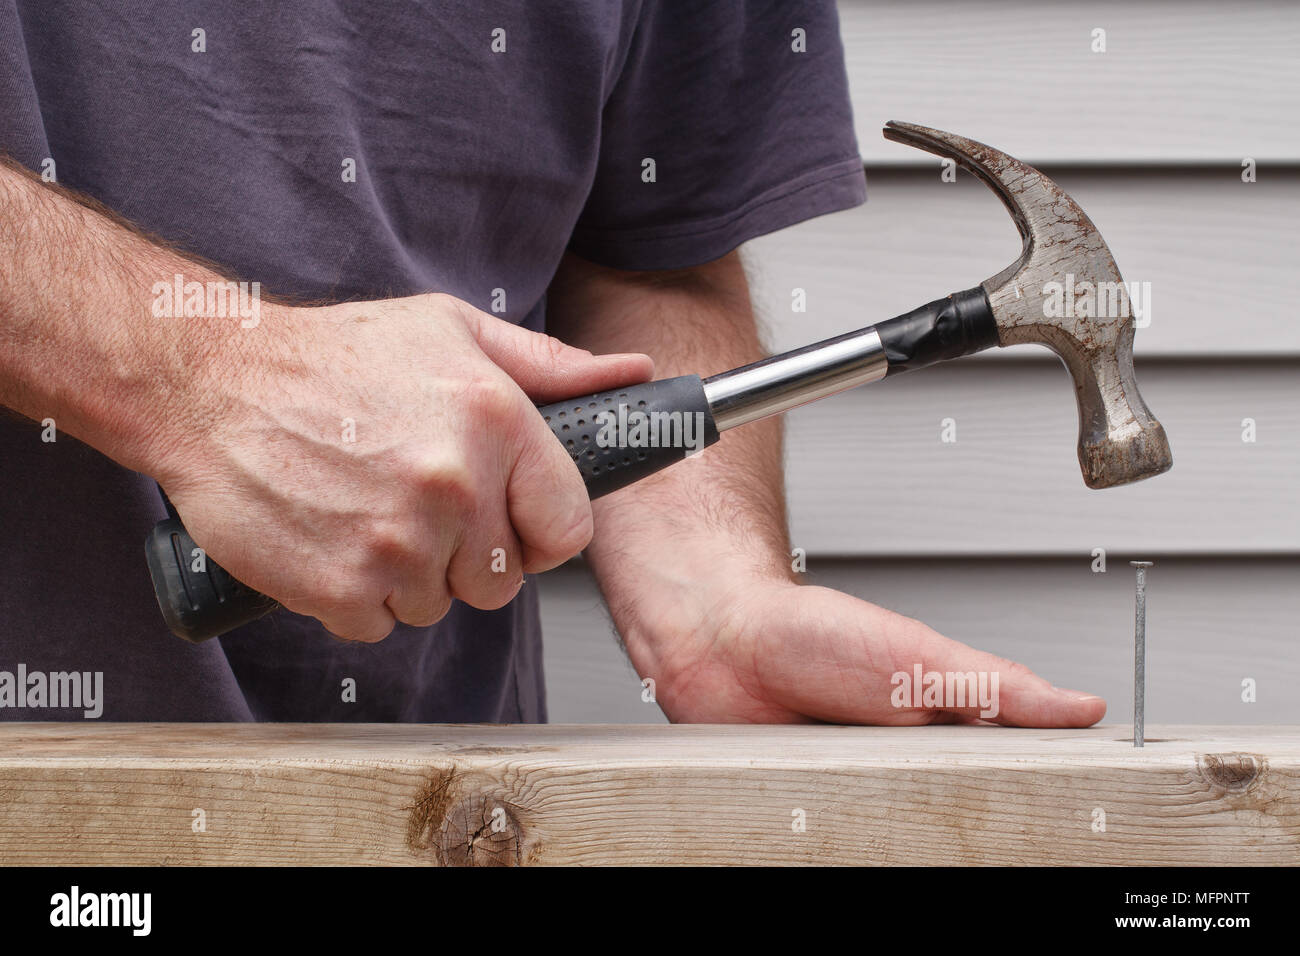 Metal Hammer With Wood Handle Stockfotos & Metal Hammer With Wood ...